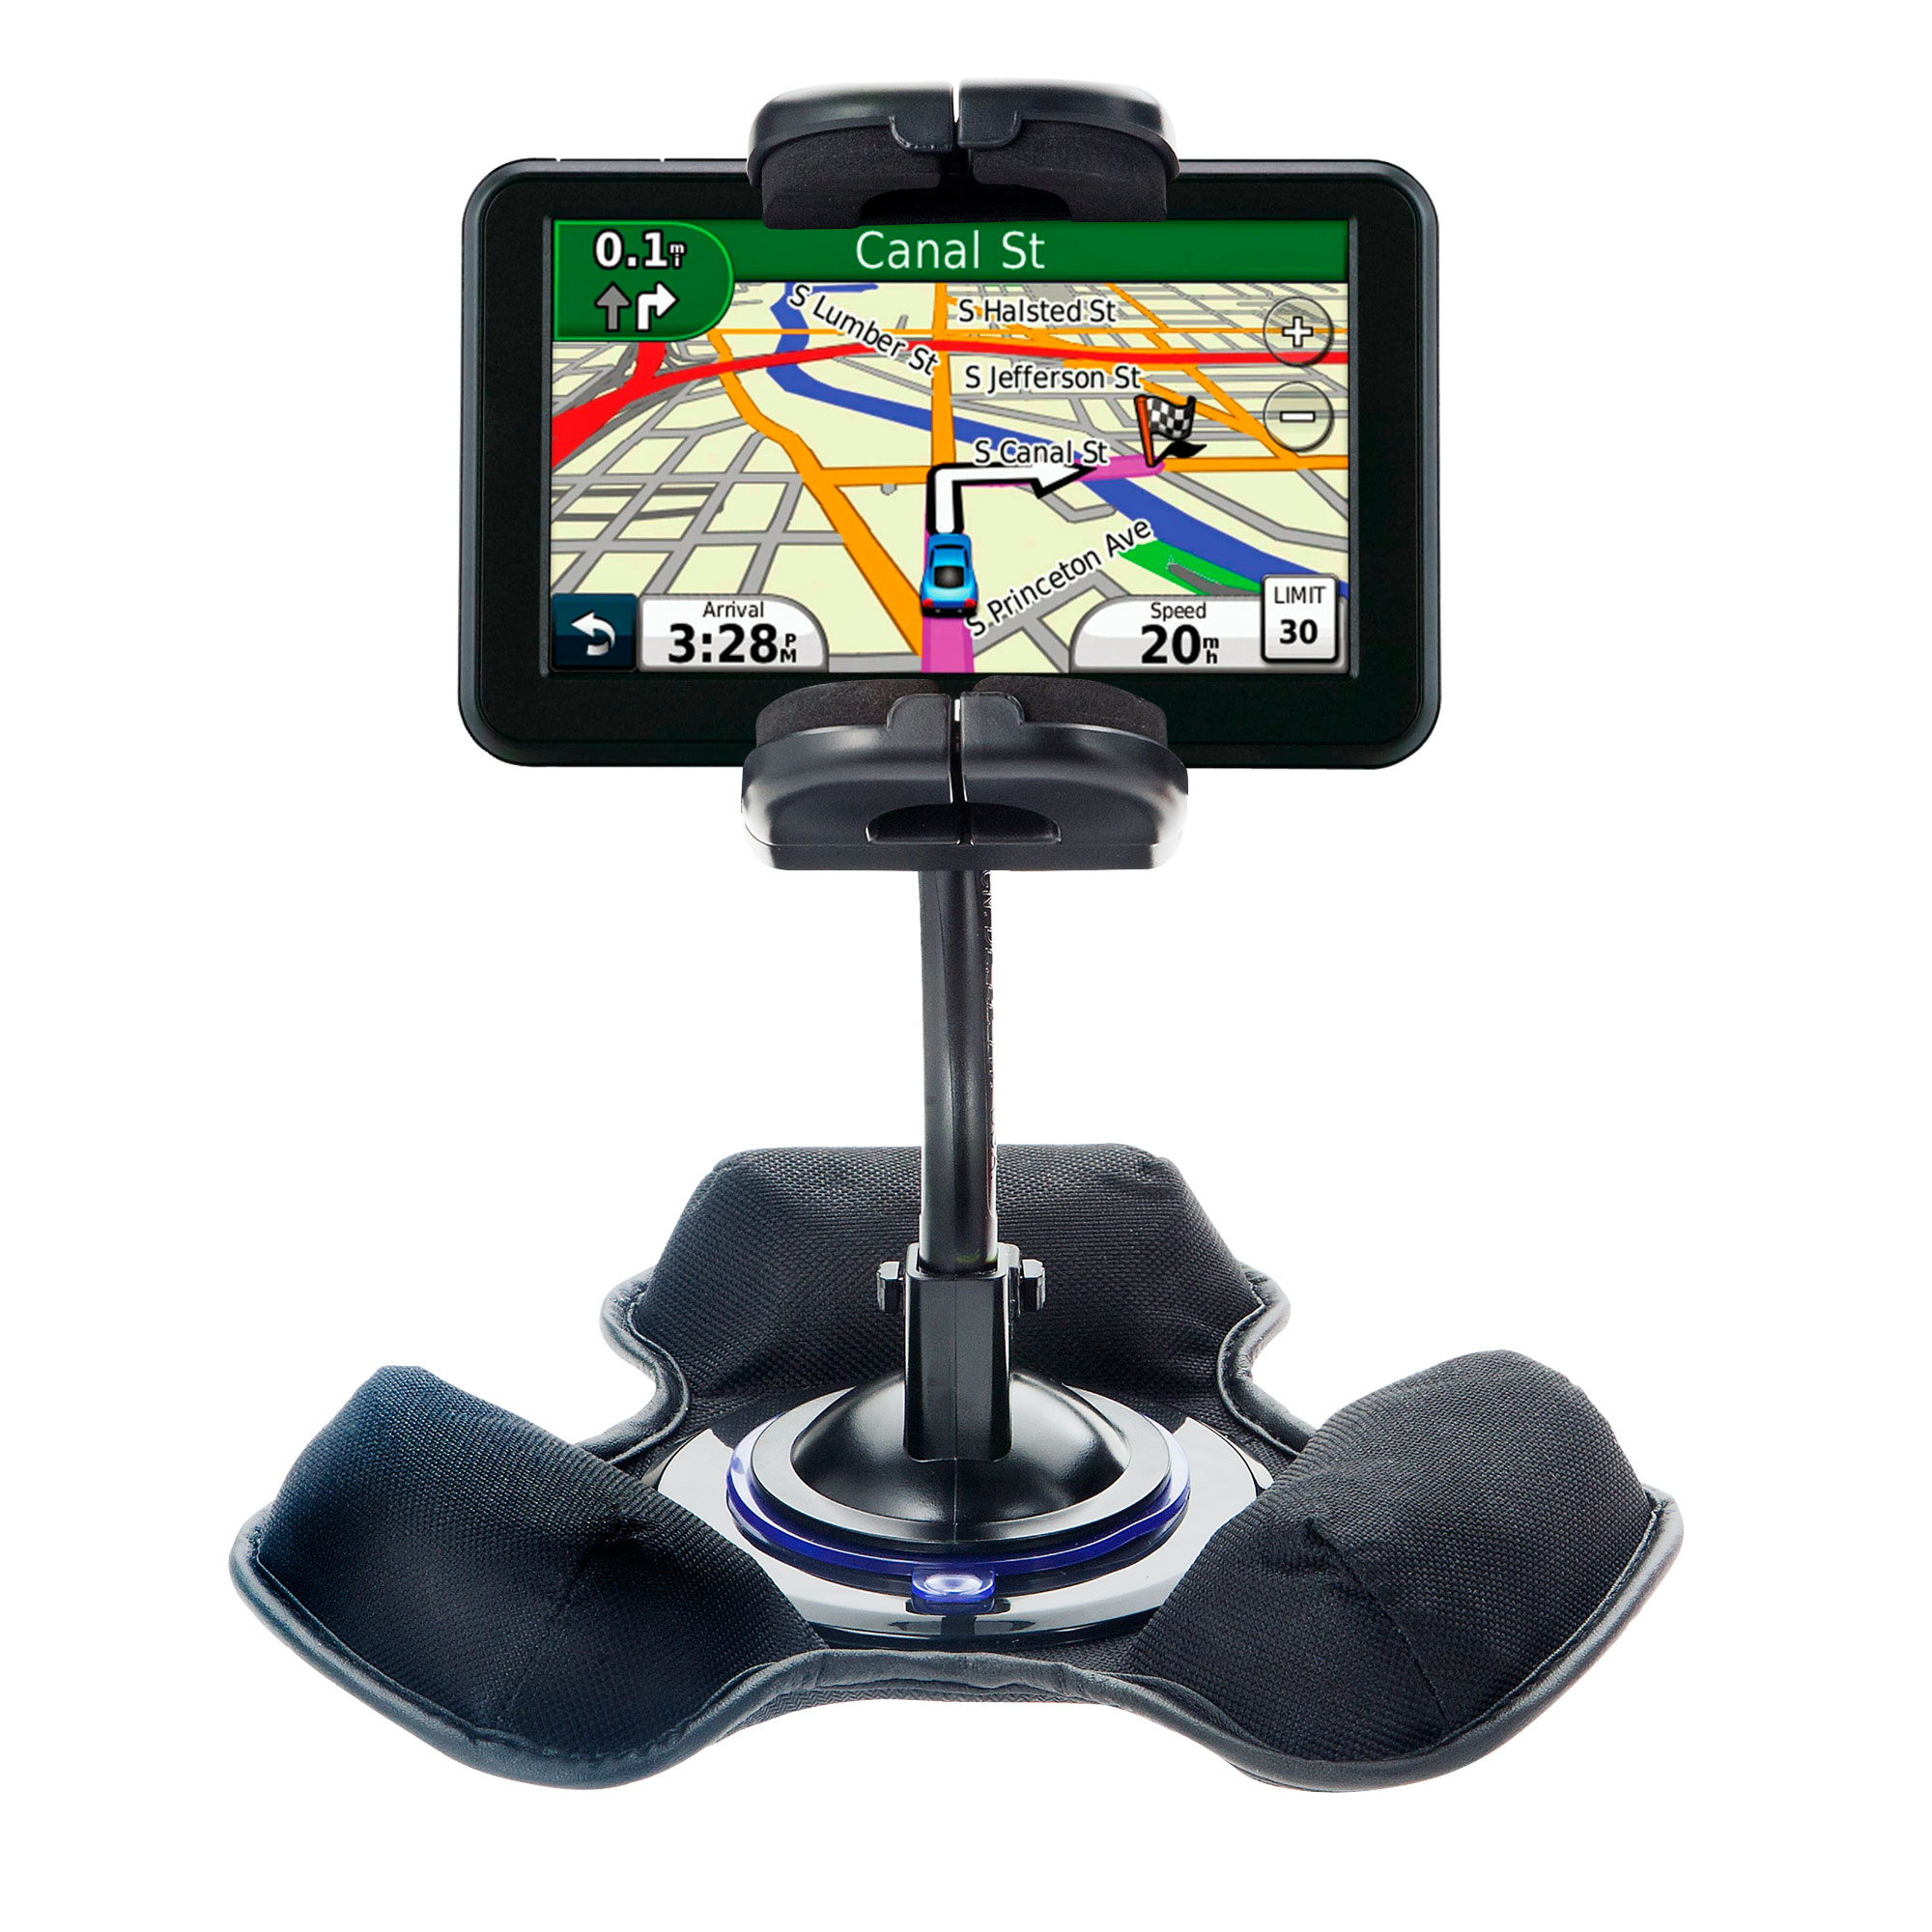 Car / Truck Vehicle Holder Mounting System for Garmin Nuvi 50 50LM Includes Unique Flexible Windshield Suction and Universal Dashboard Mount Options